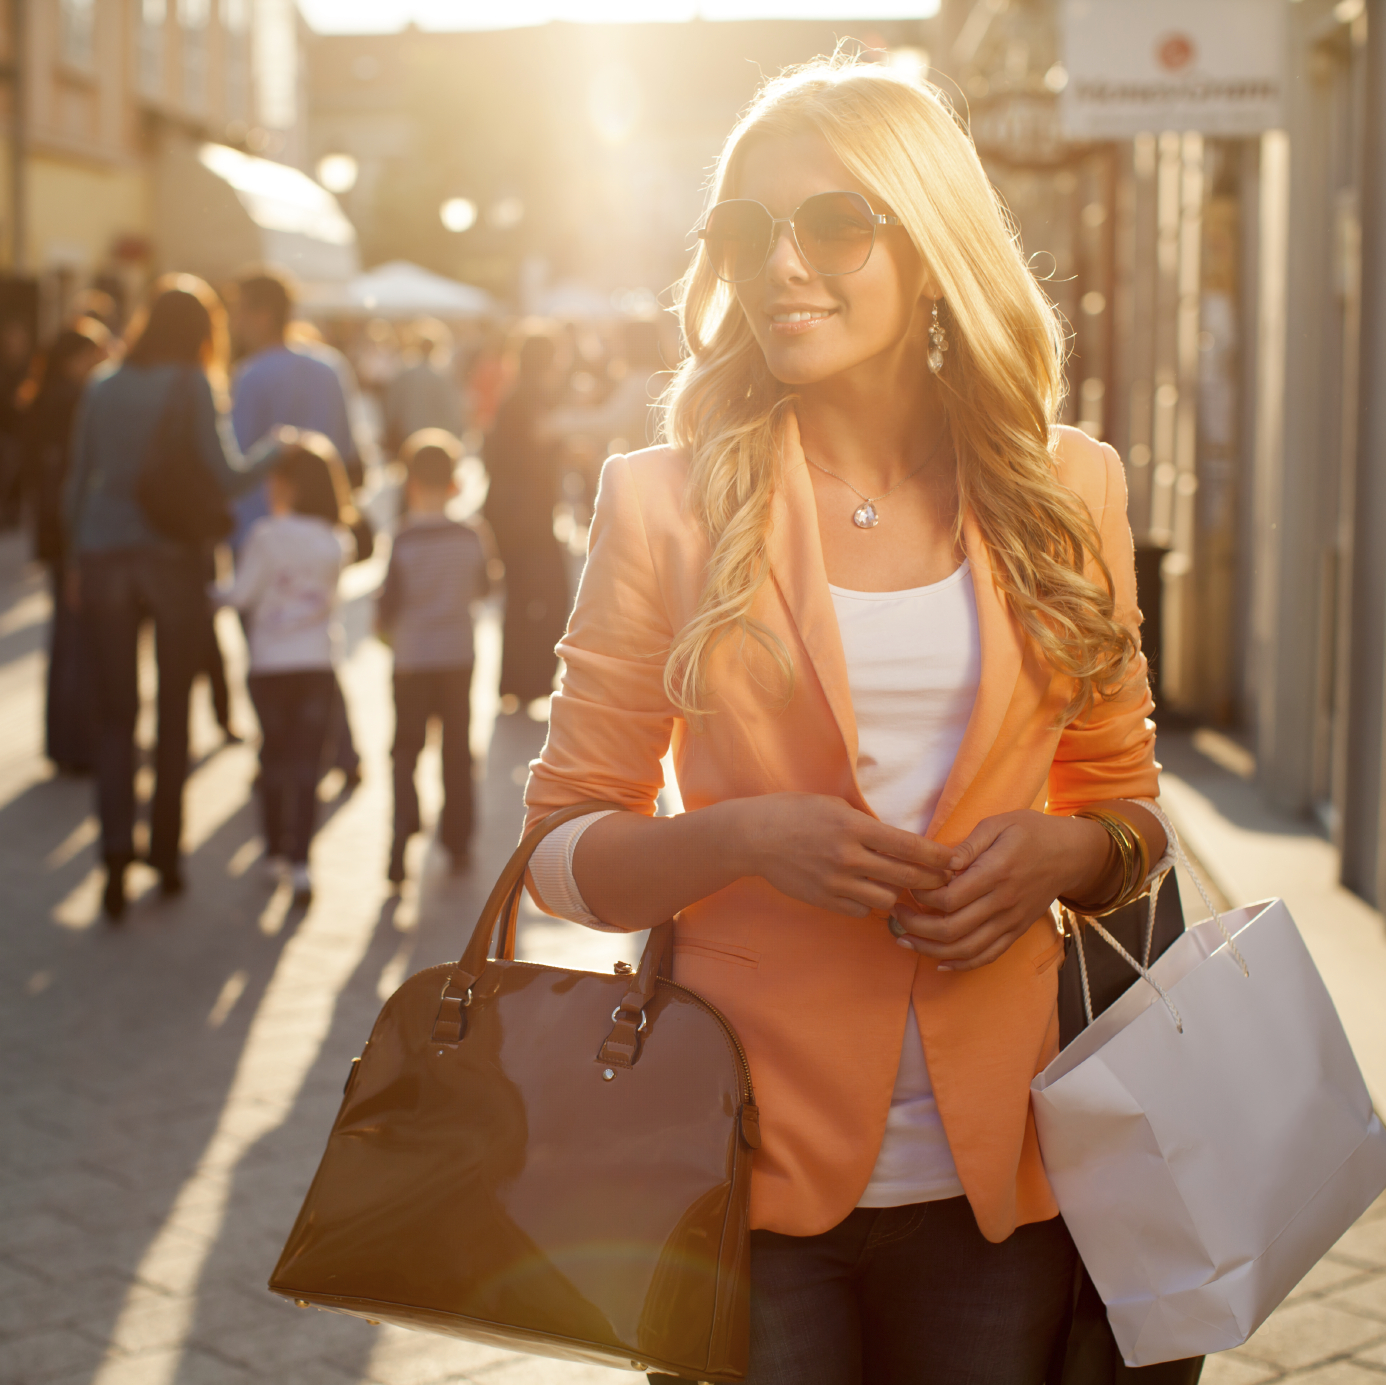 woman shopping, sun, sunglasses